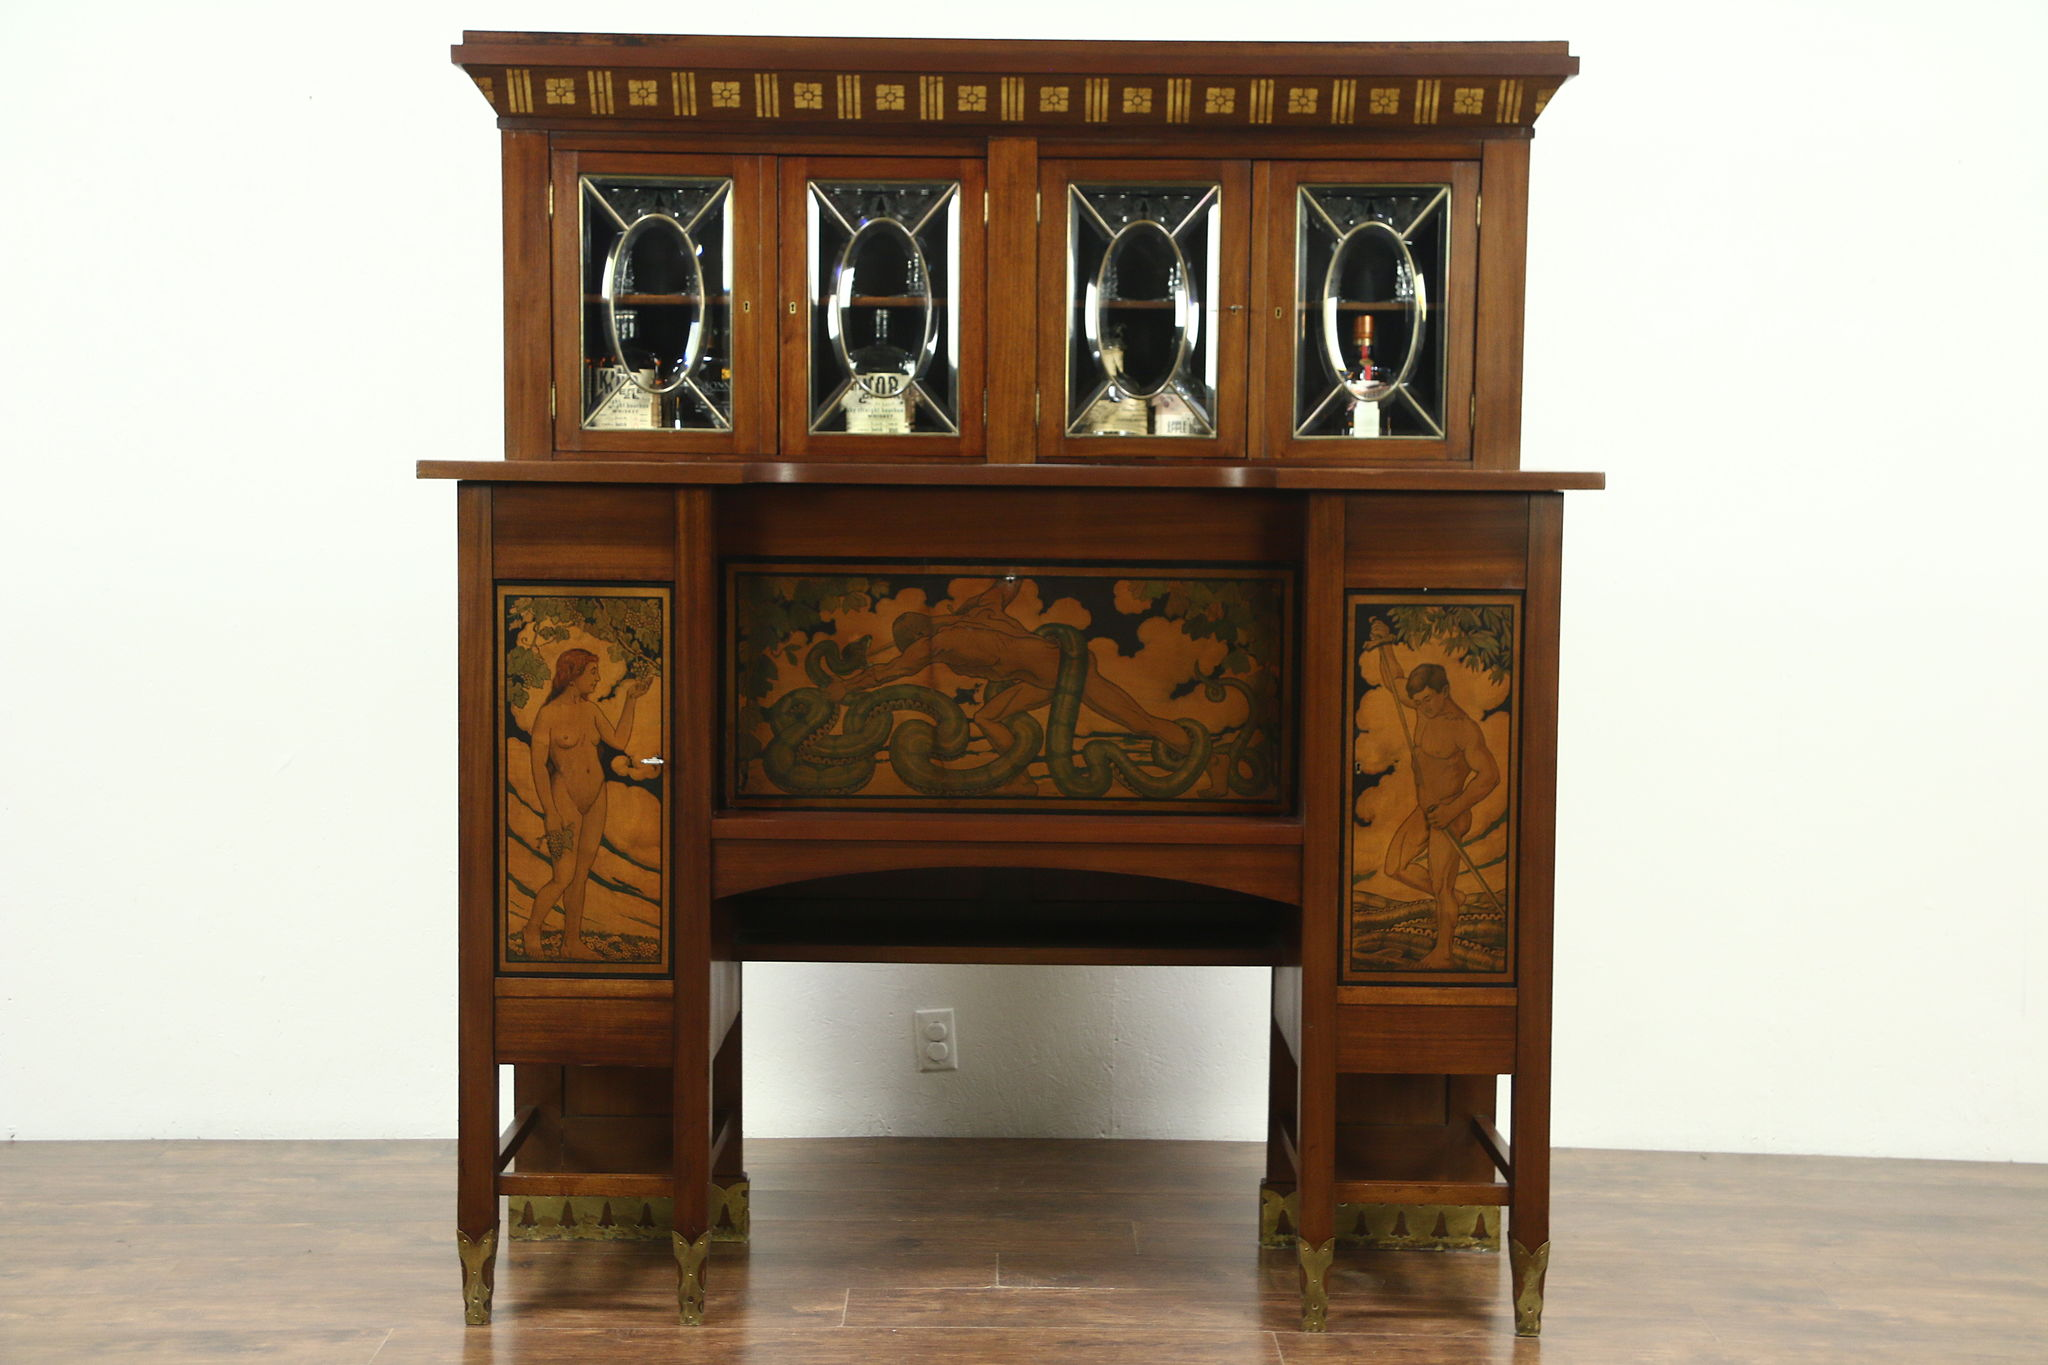 Home fice Harp Gallery Antique Furniture